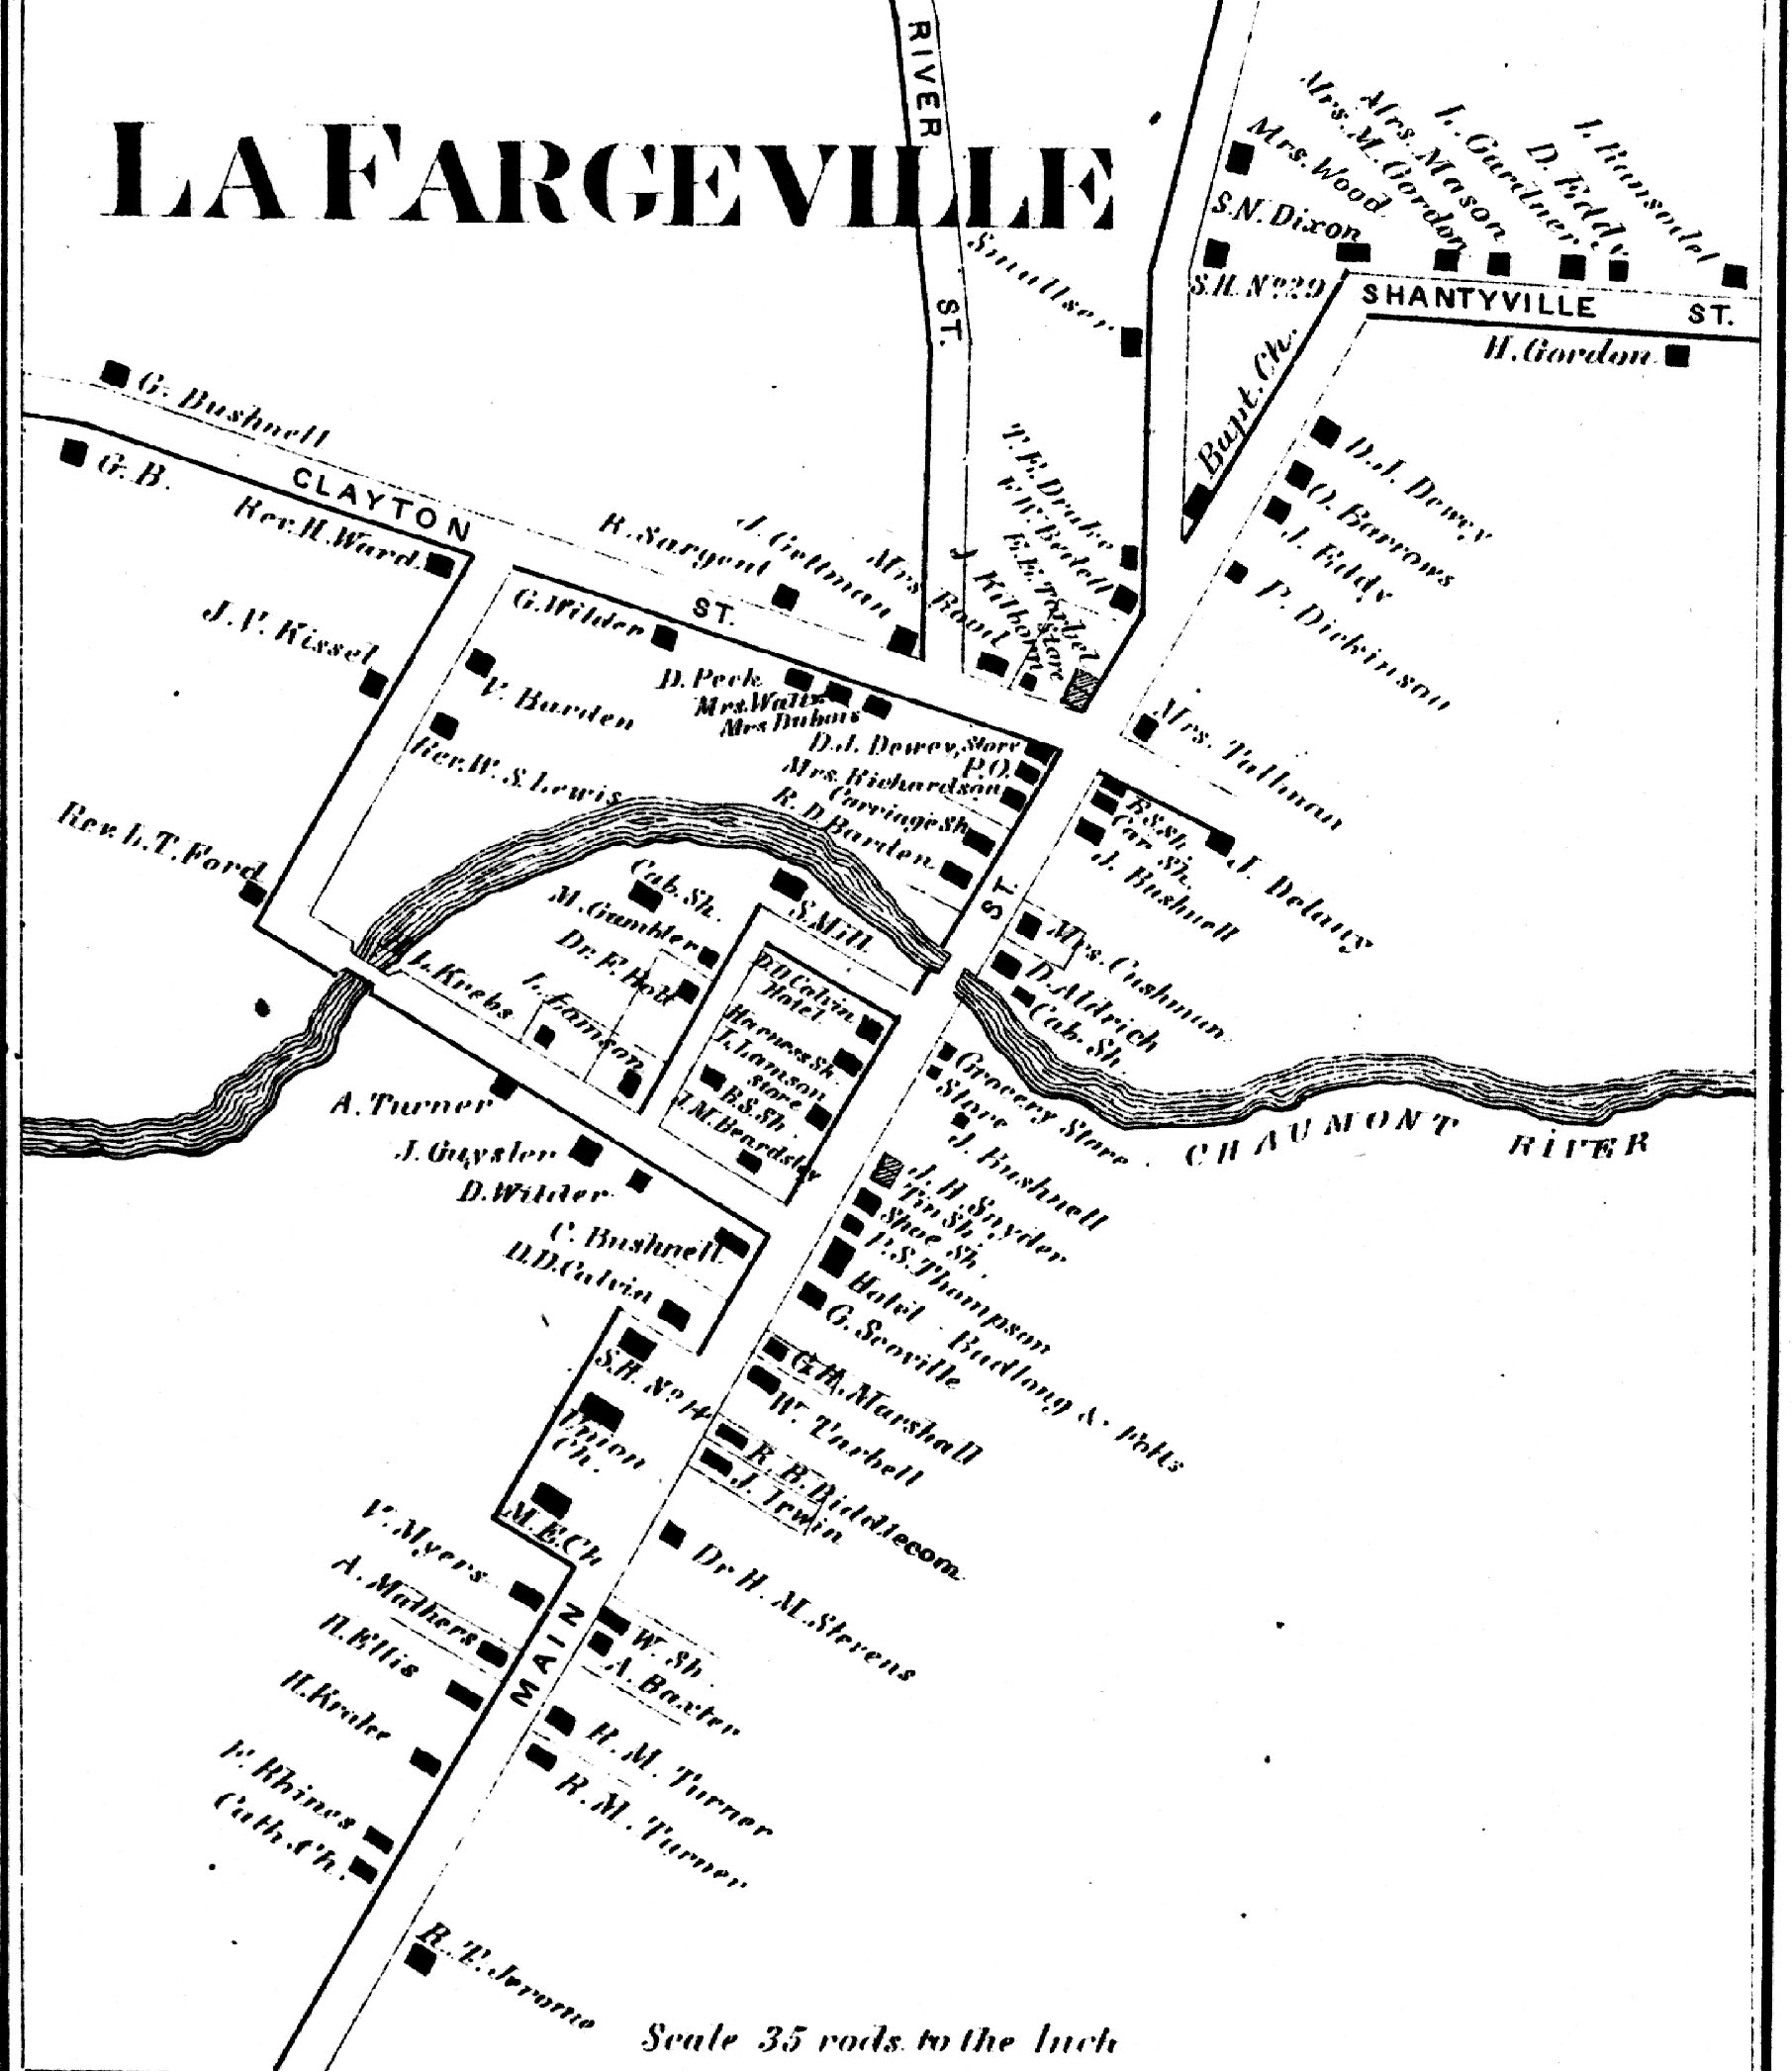 1864 mAP OF lAFARGEVILLE